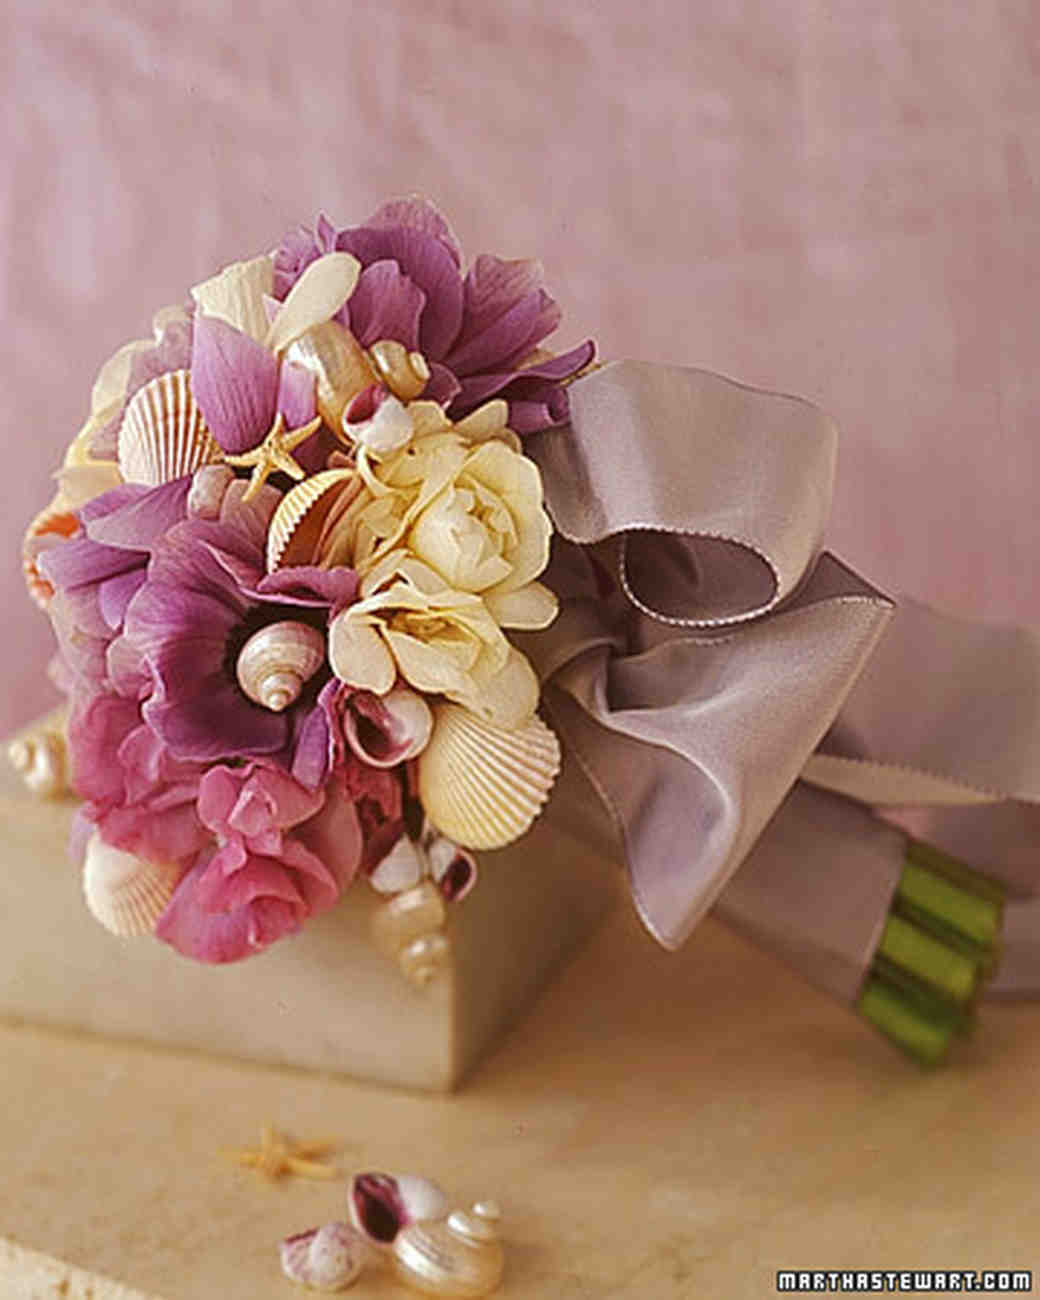 wa98240_su00_shellbouquet.jpg